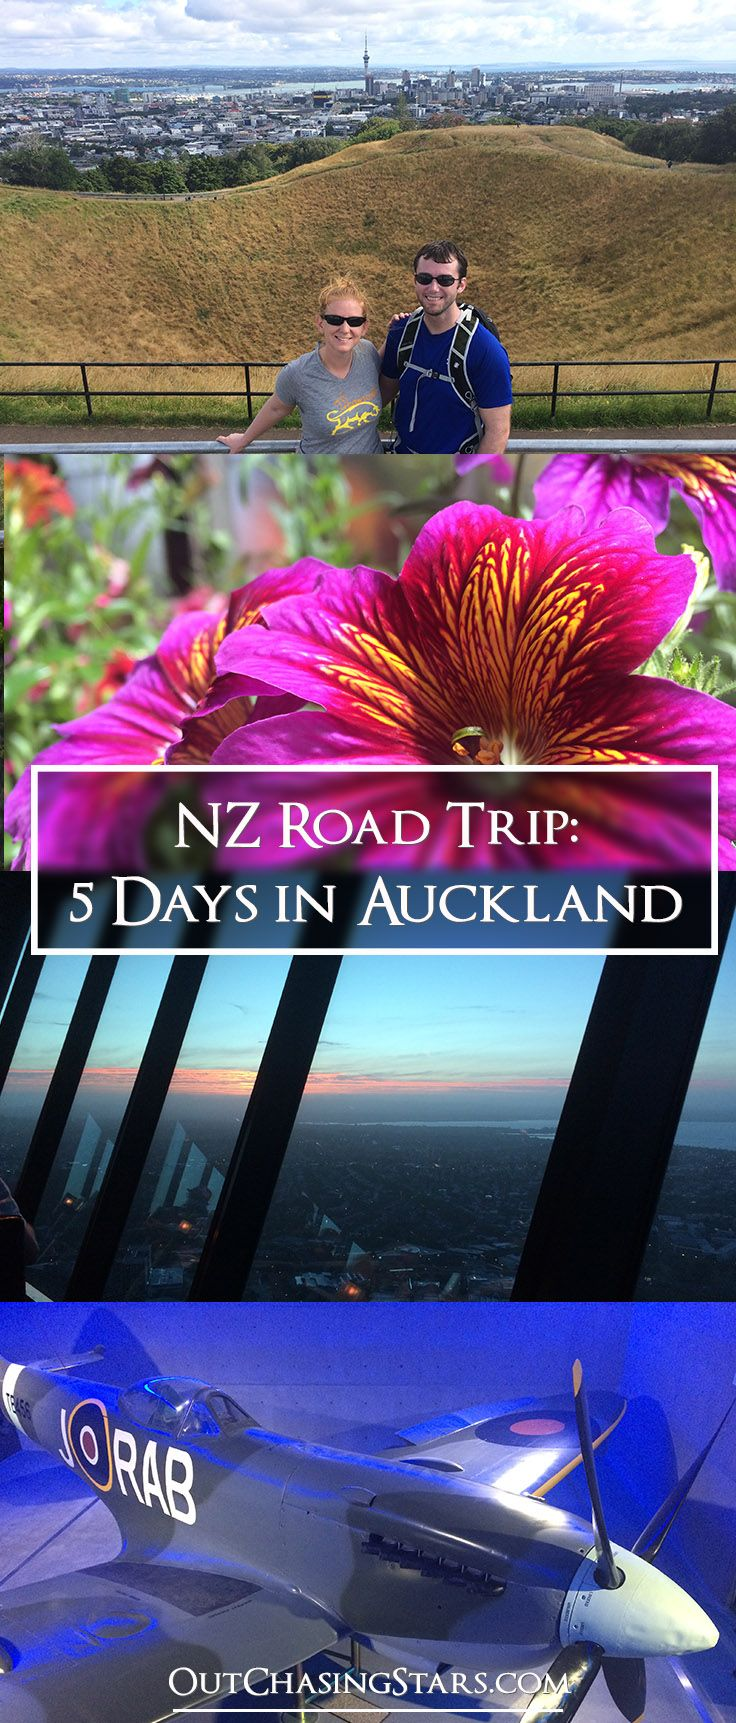 Our Road Trip kicks off in Auckland with five days exploring the harbourside and museums. New Zealand | North Island | Road Trip | Auckland - OutChasingStars.com